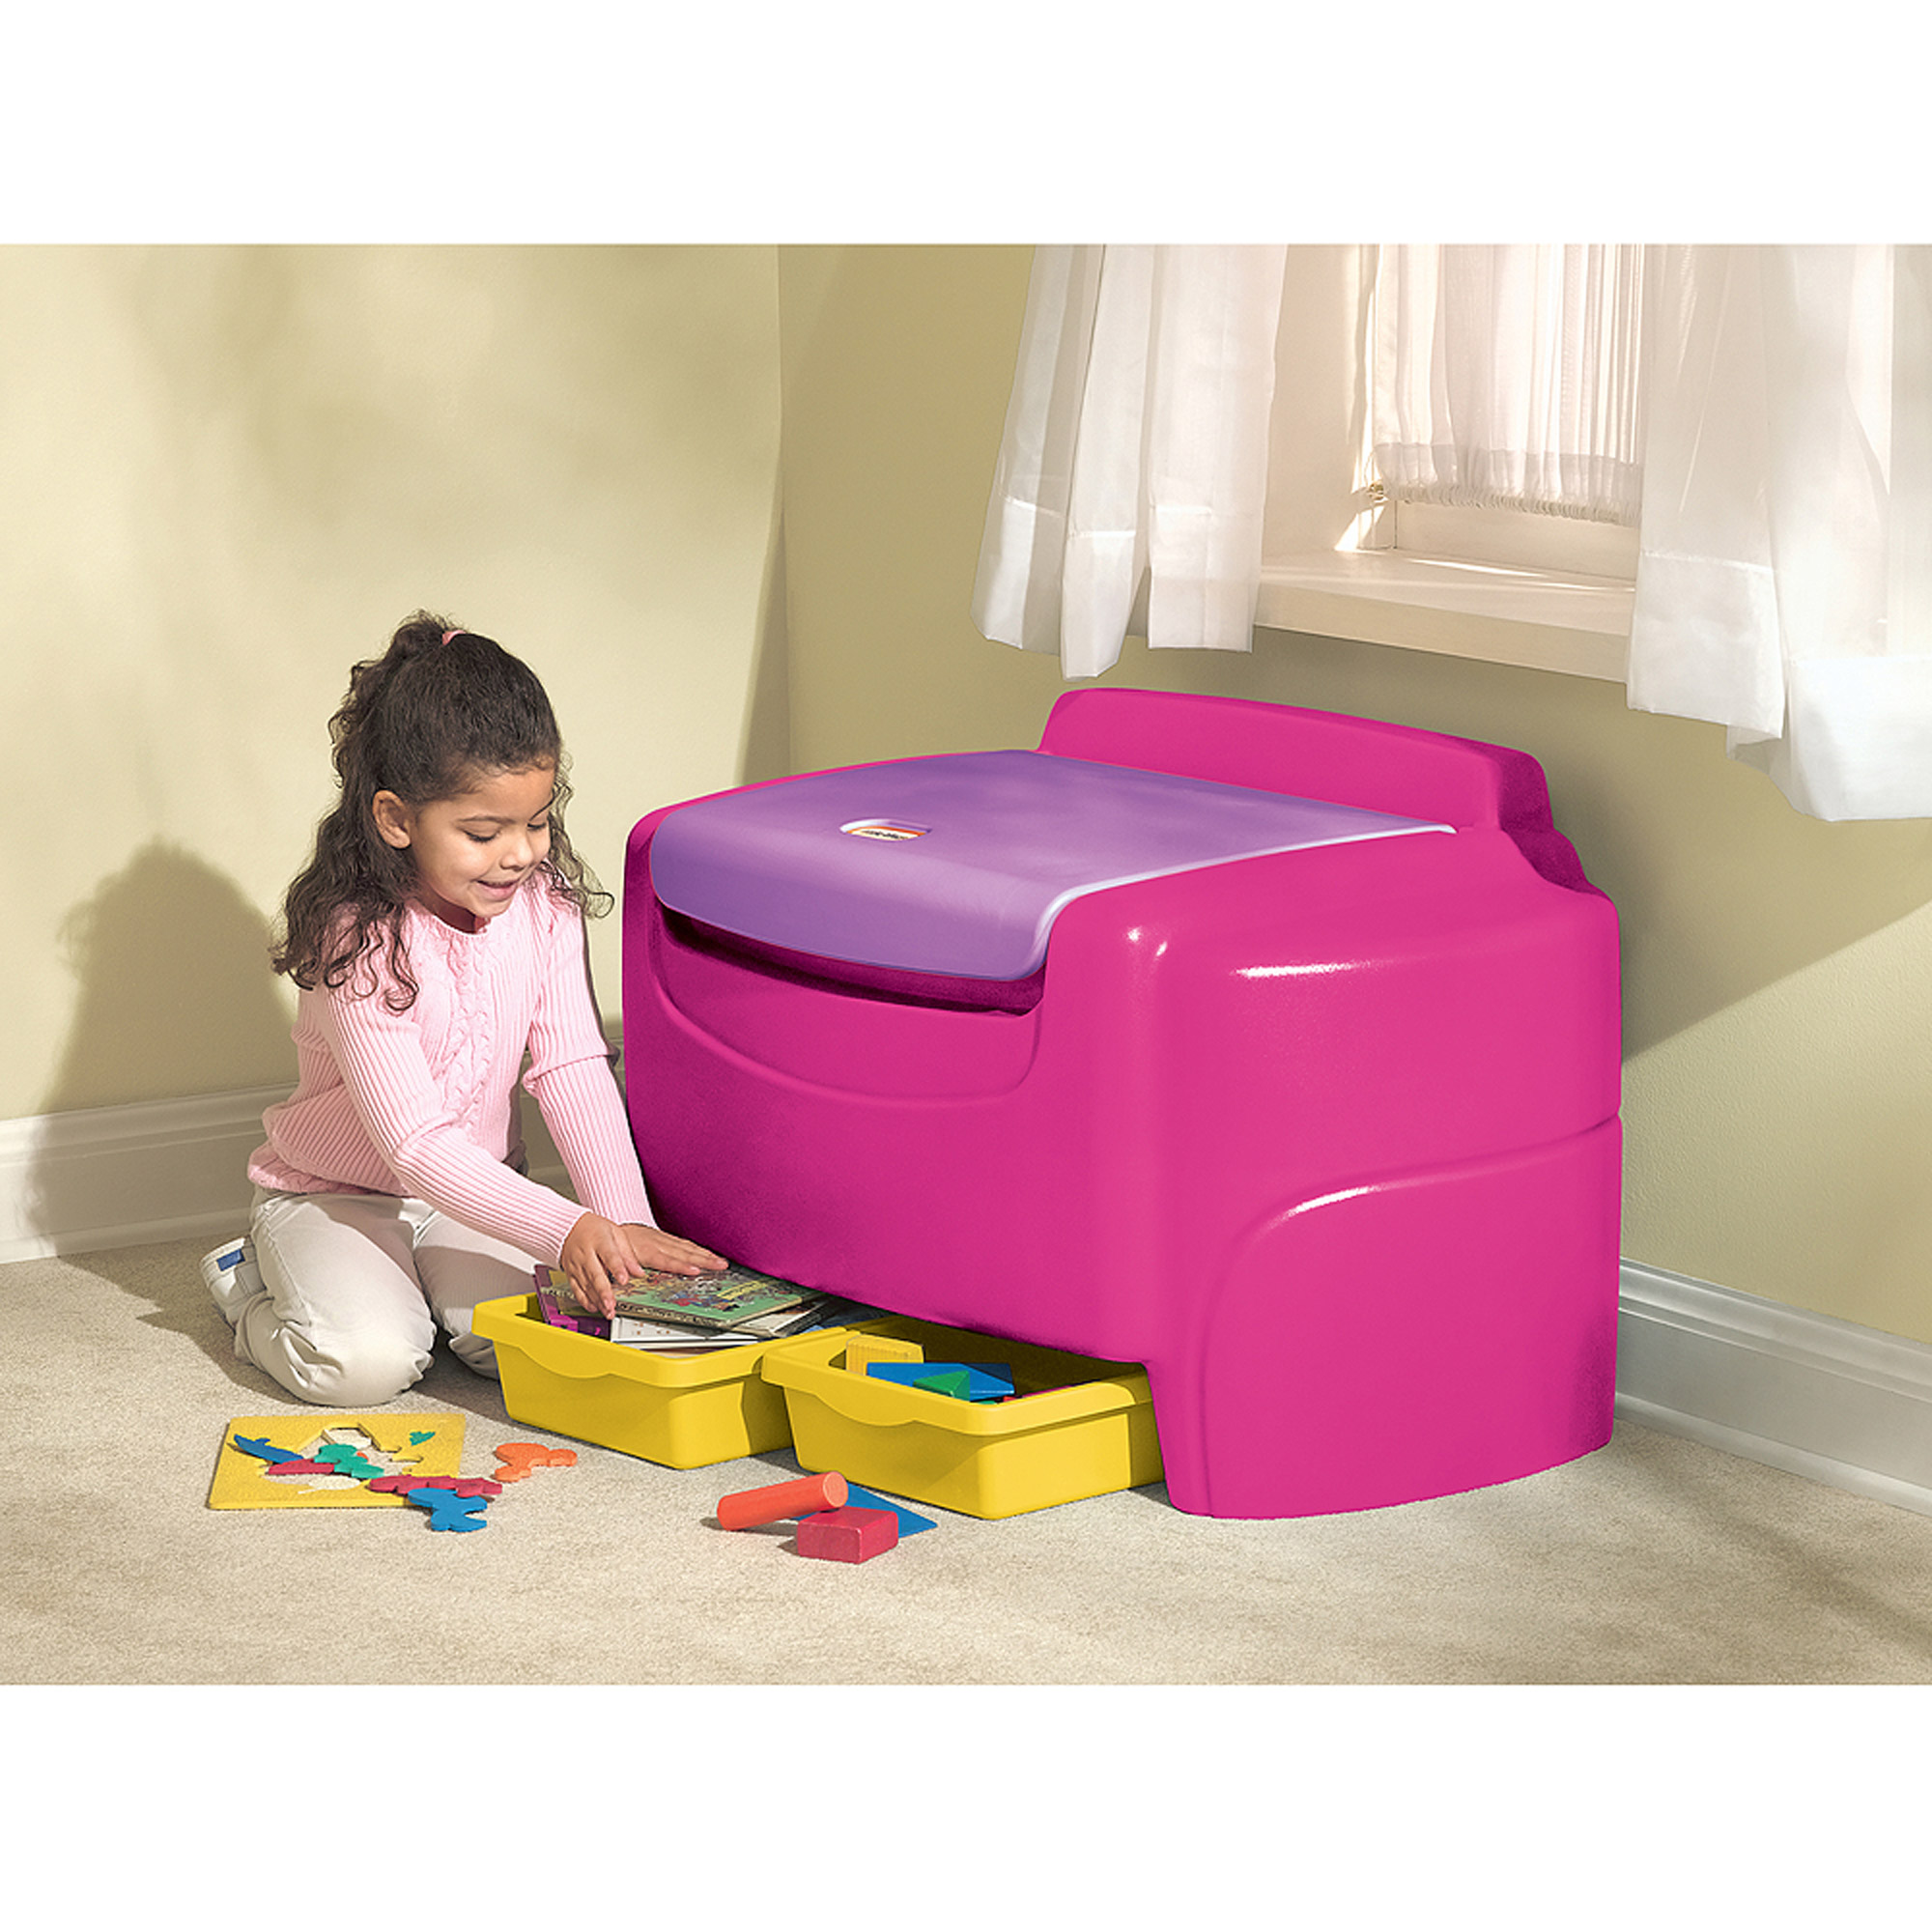 Little Tikes Sort N Store Toy Chest, Purple and Pink